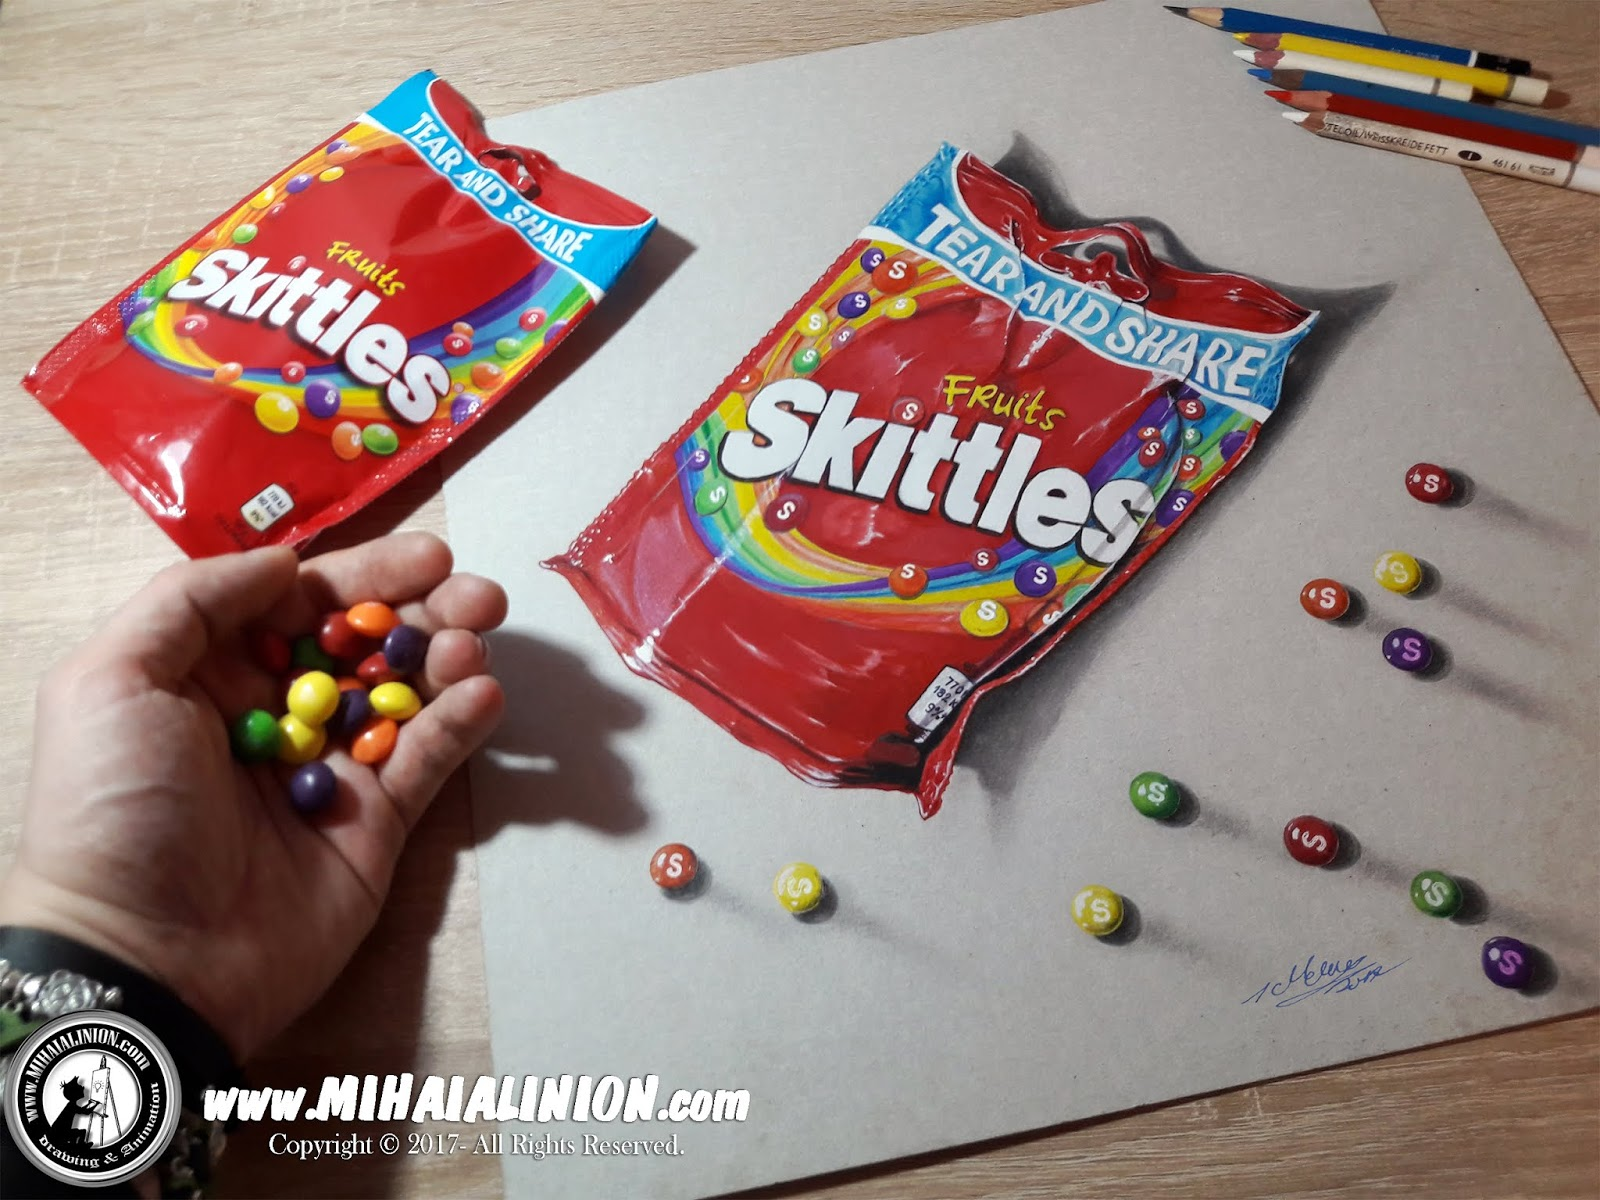 svg black and white stock Mihai alin ion realistic. Skittles drawing